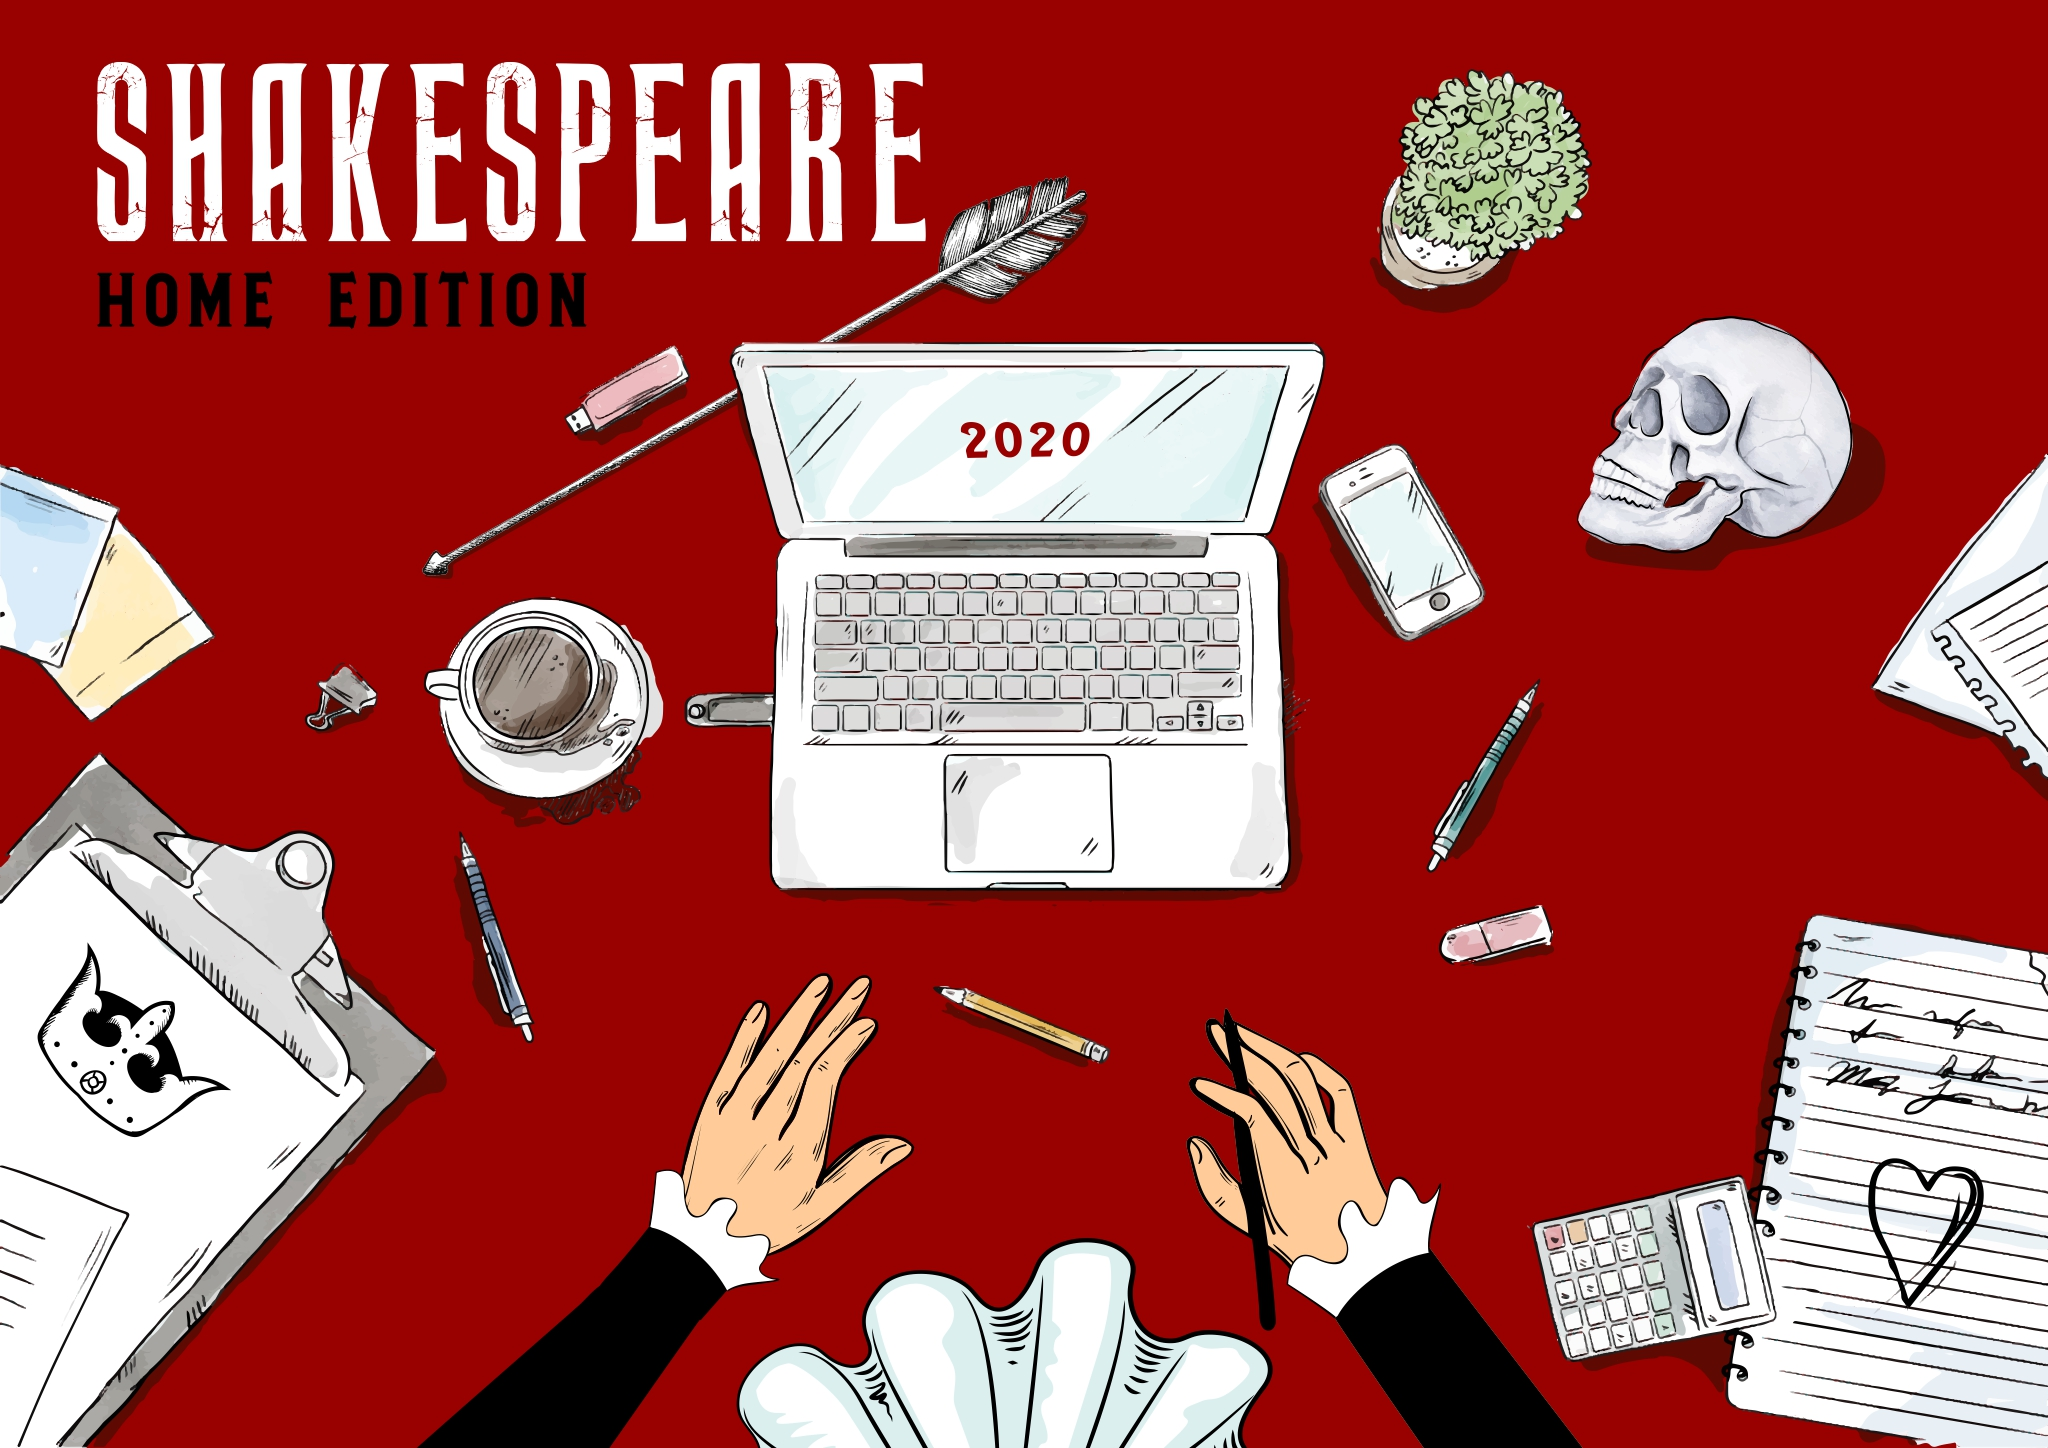 SHAKESPEARE HOME EDITION